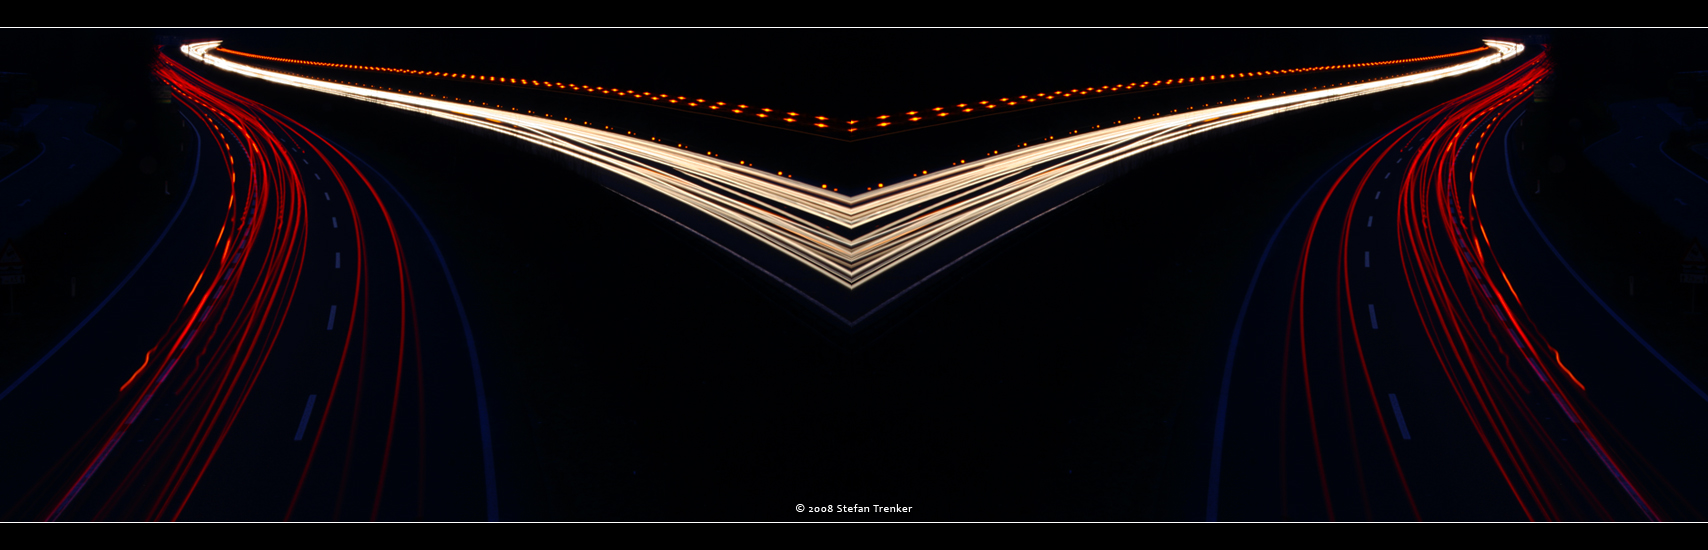 Heart of Lights by stetre76